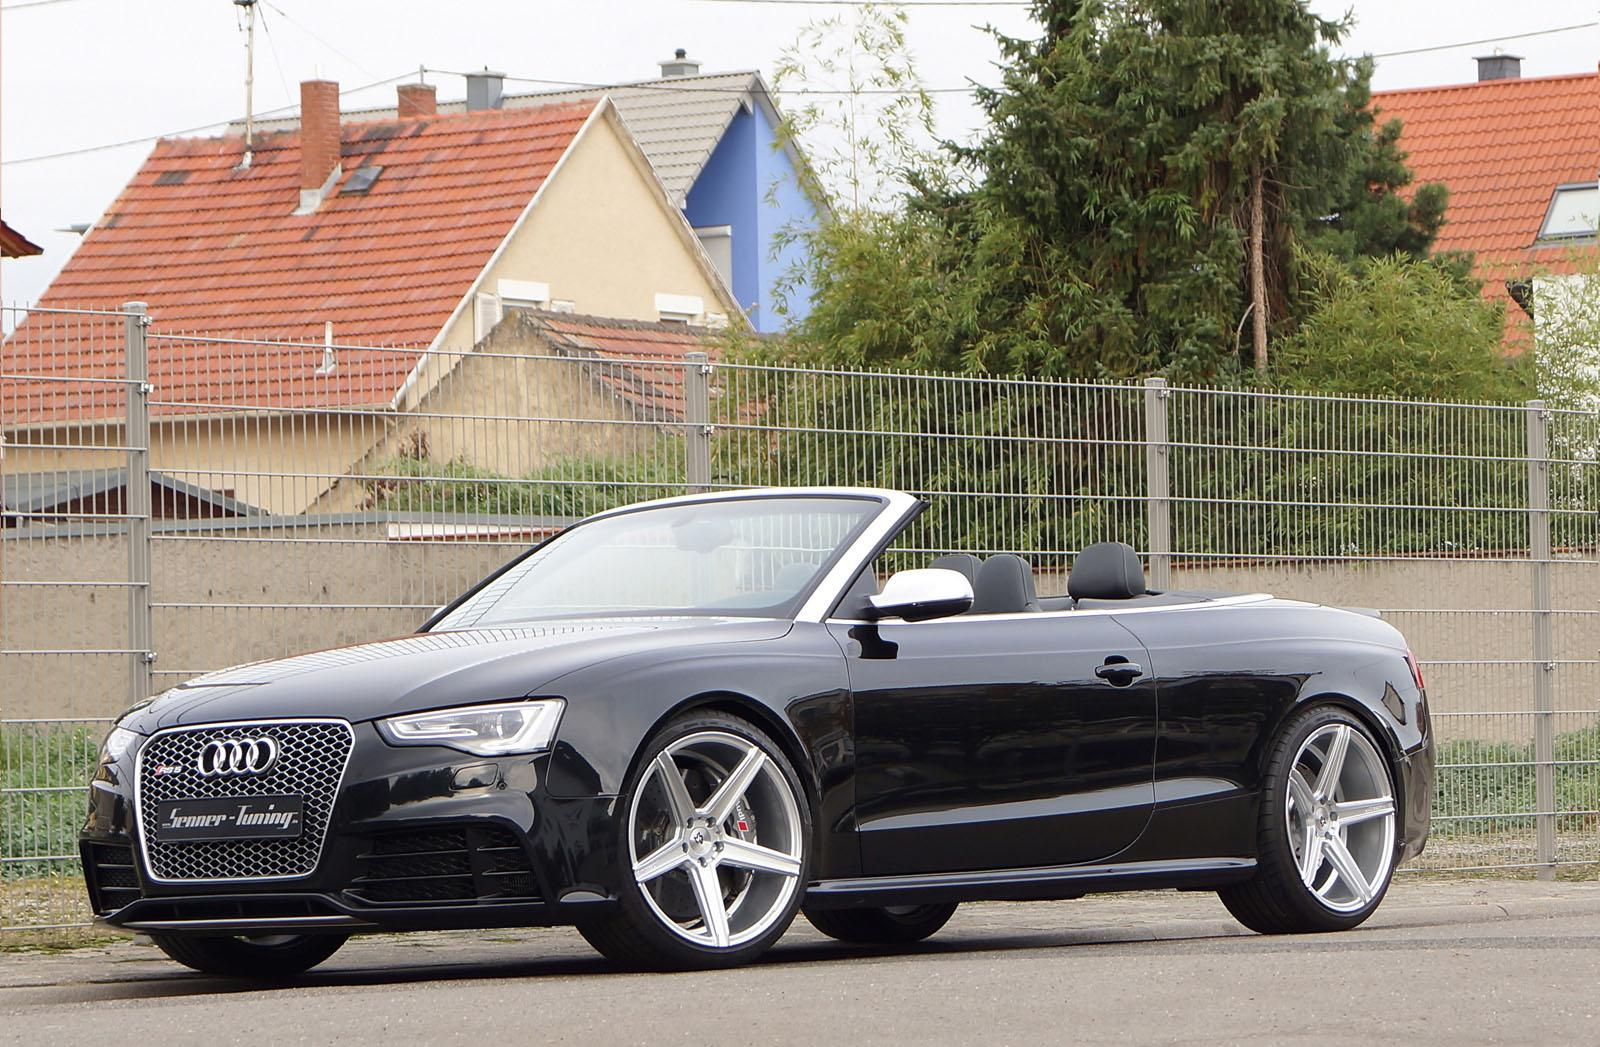 http://www.autoblog.gr/wp-content/gallery/audi-rs5-cabrio-by-senner-tuning/181259844651873358.jpg